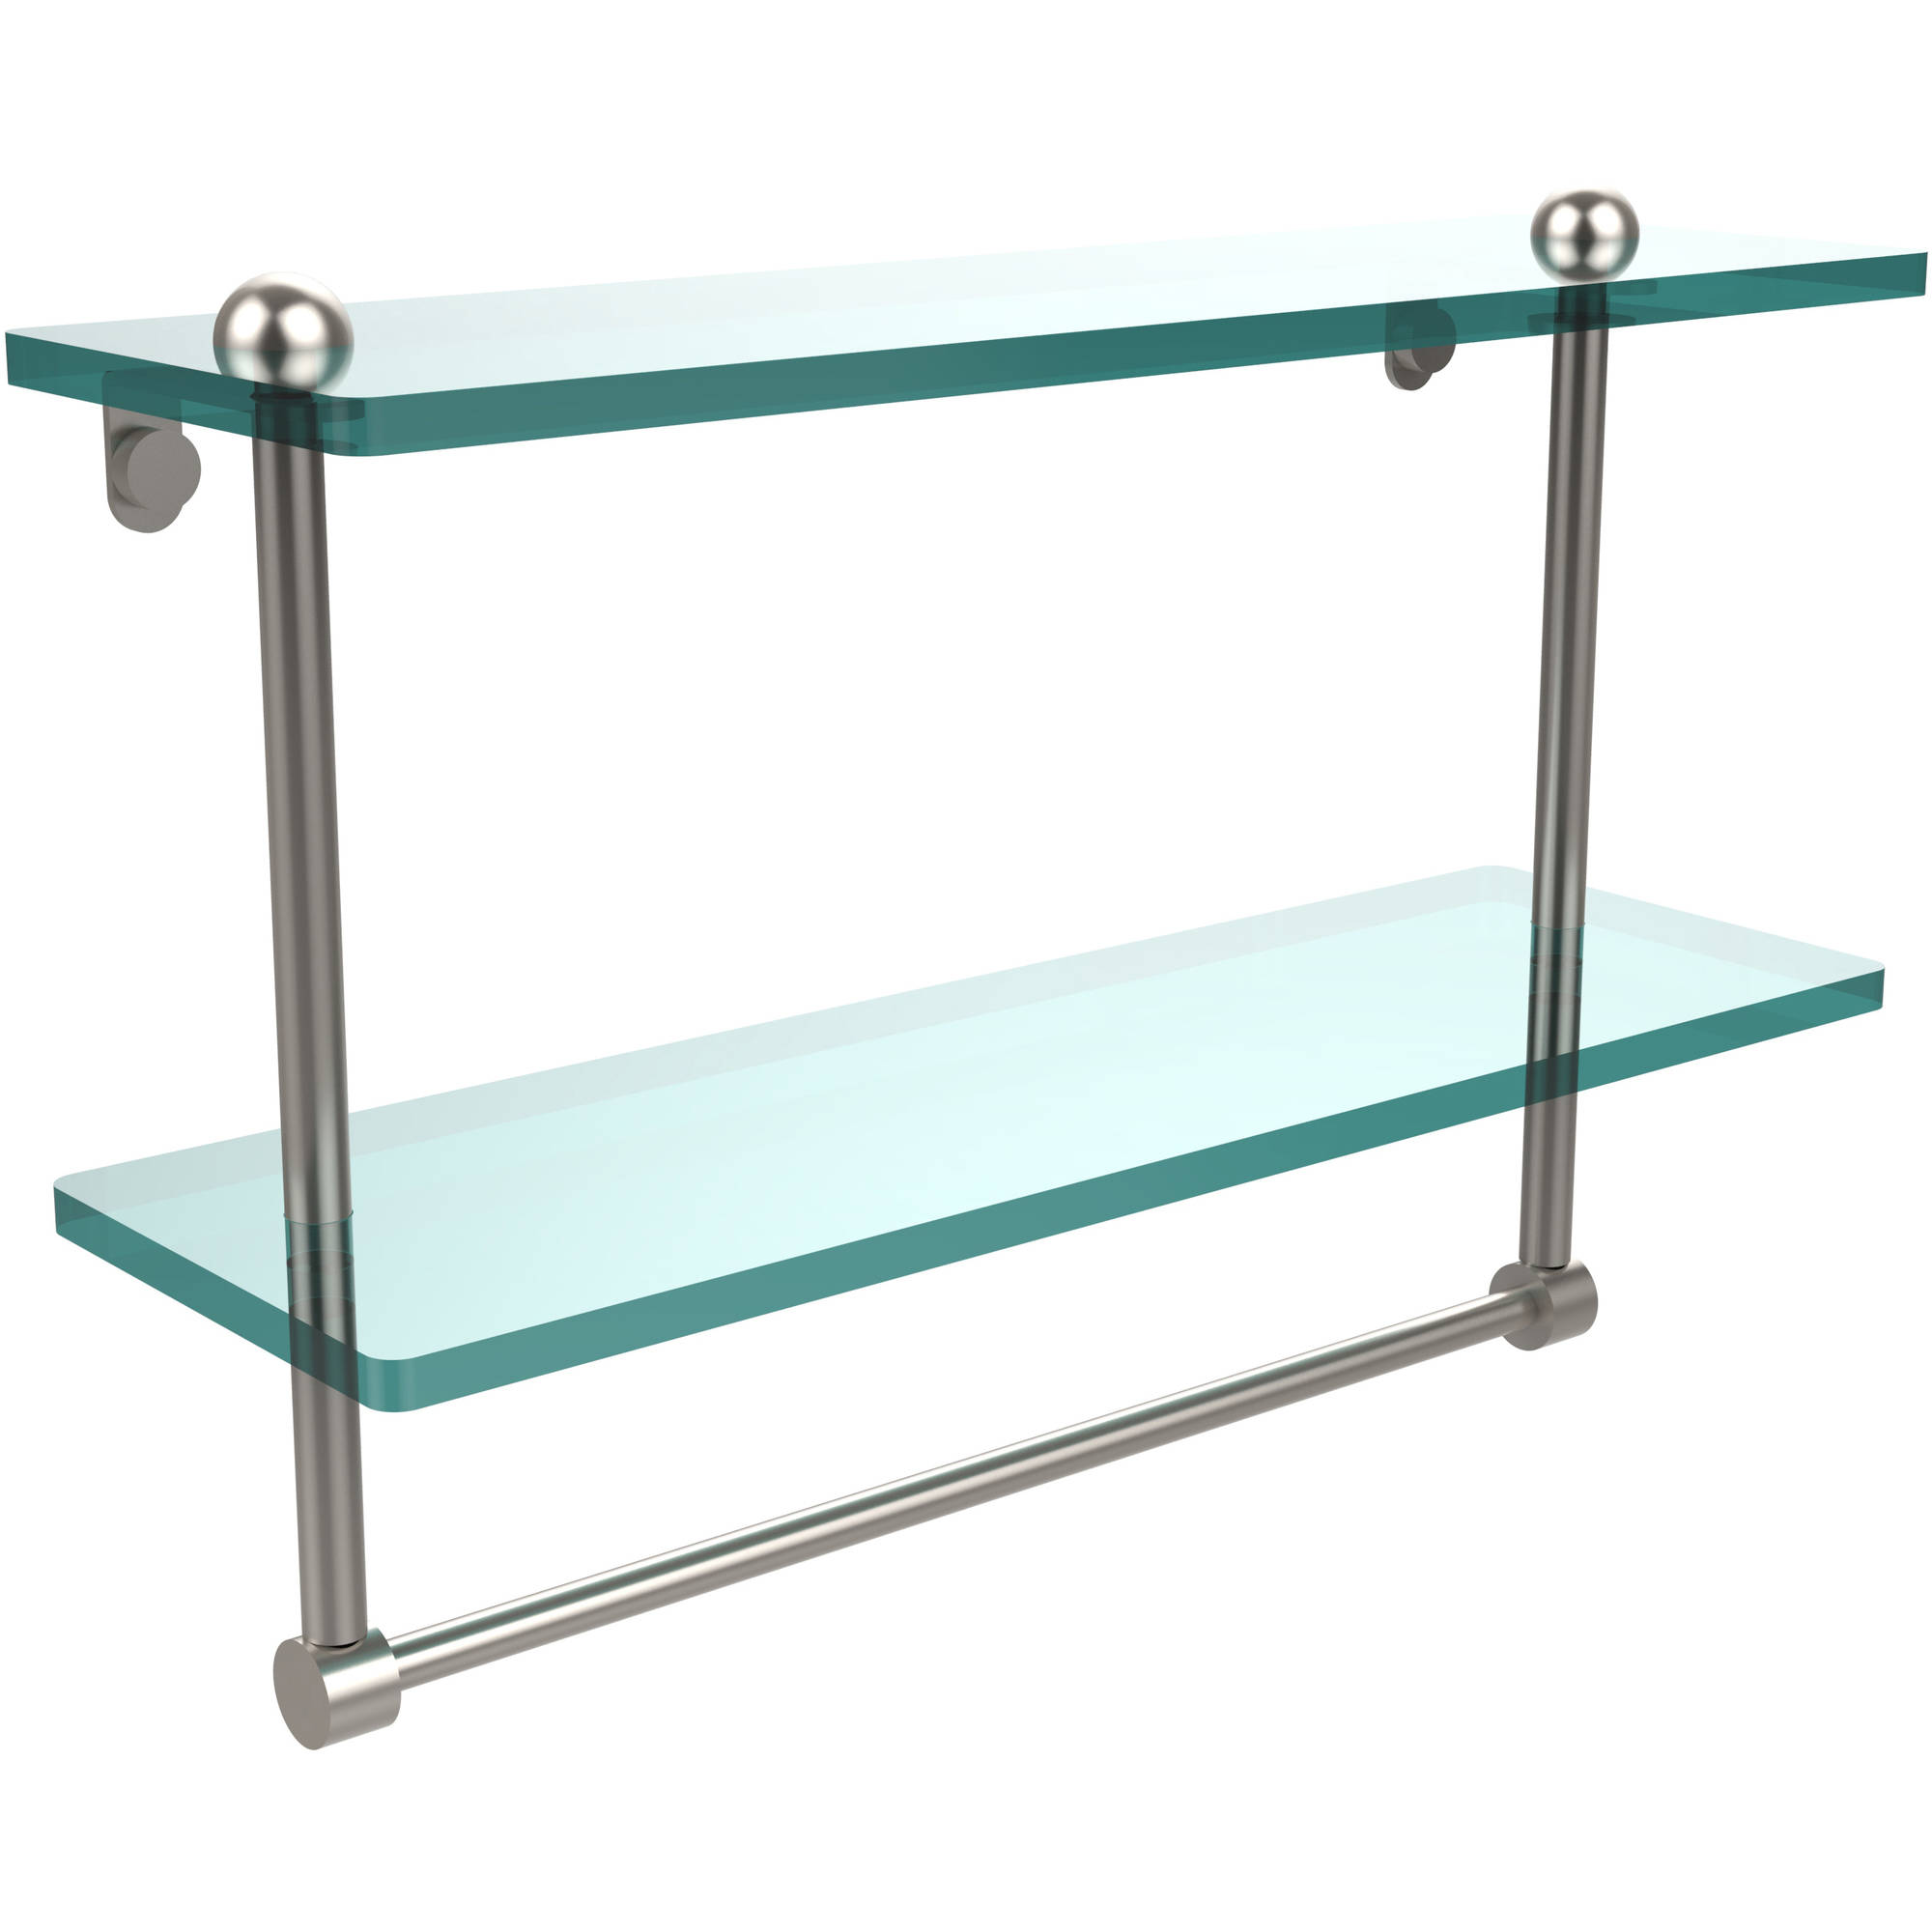 "16"" 2-Tiered Glass Shelf with Integrated Towel Bar (Build to Order)"